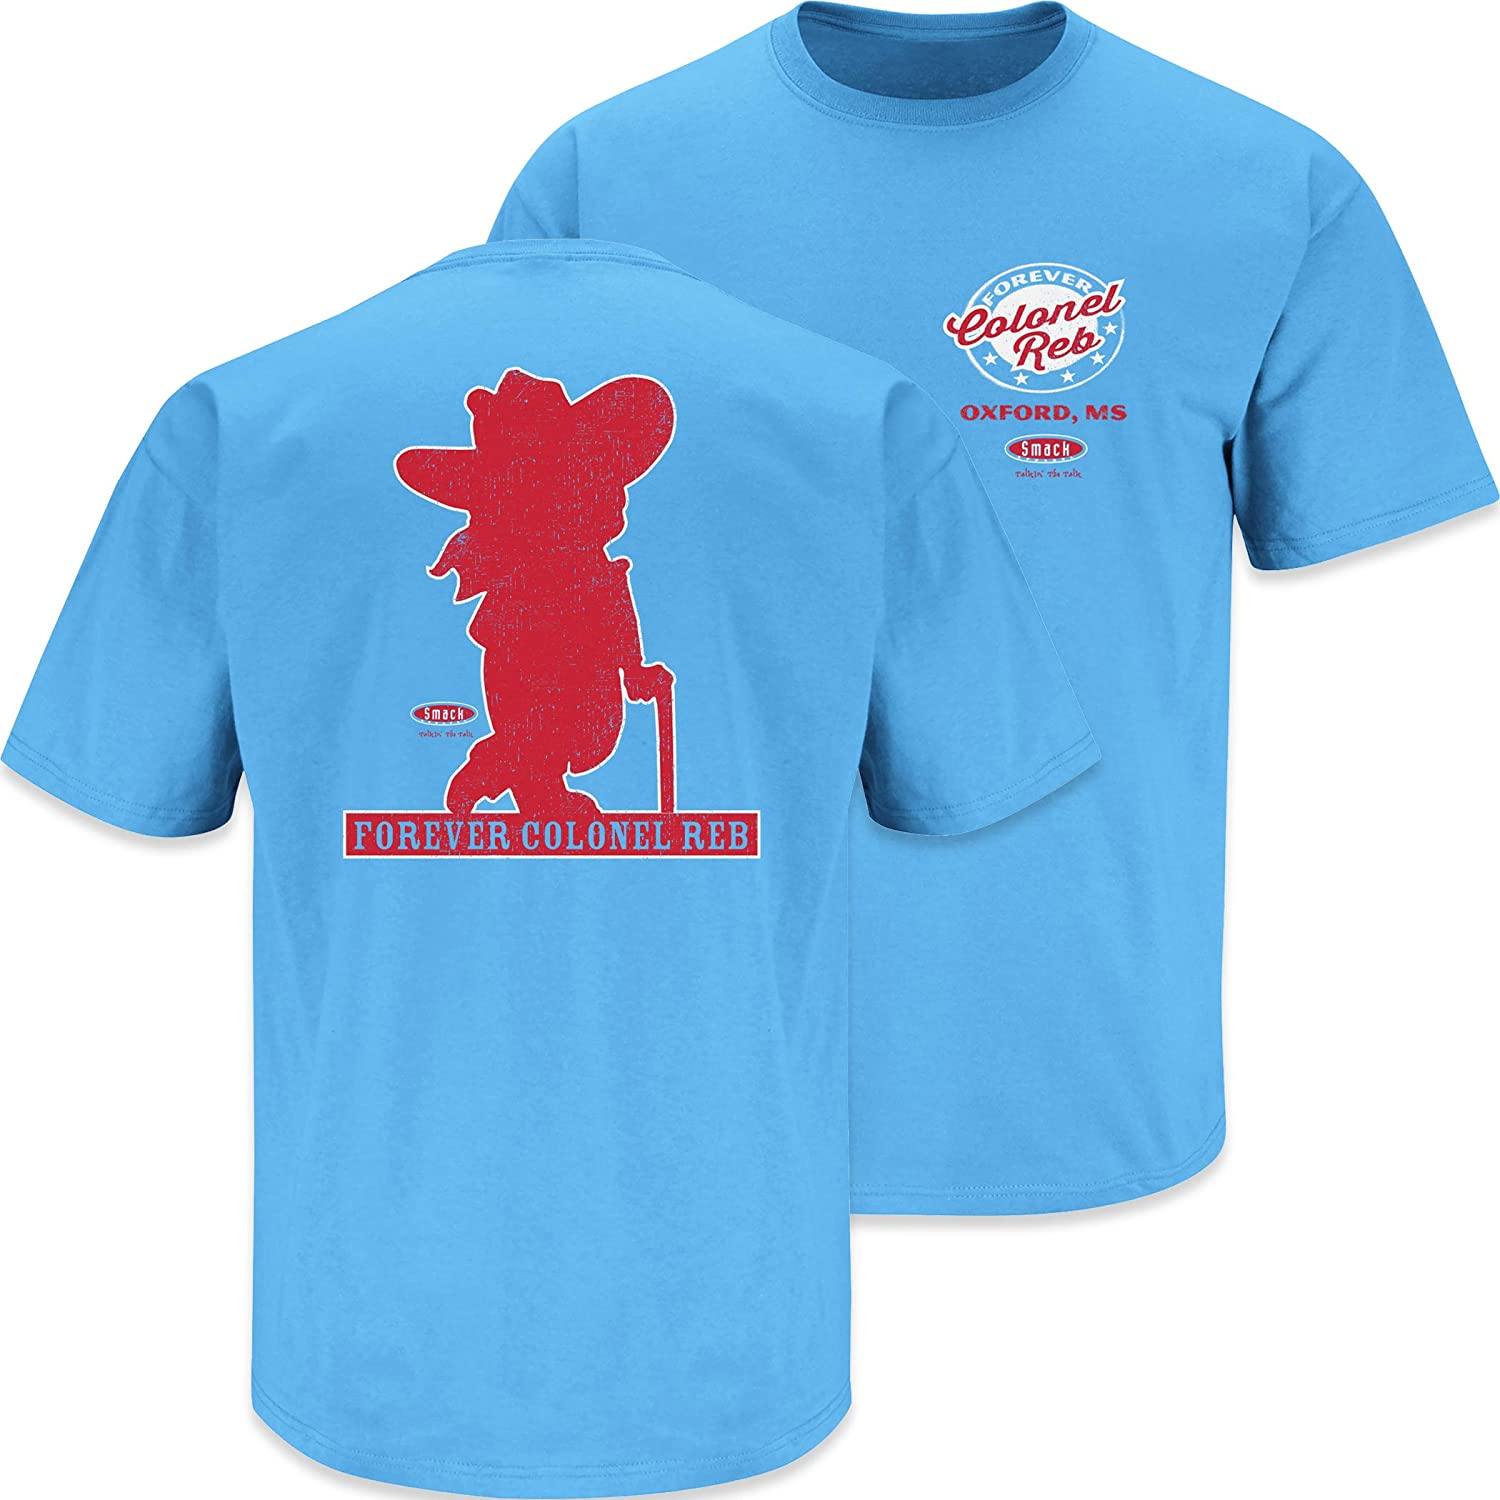 Forever Colonel Reb T Shirt Sm-5X Ole Miss Football Fans or Sticker